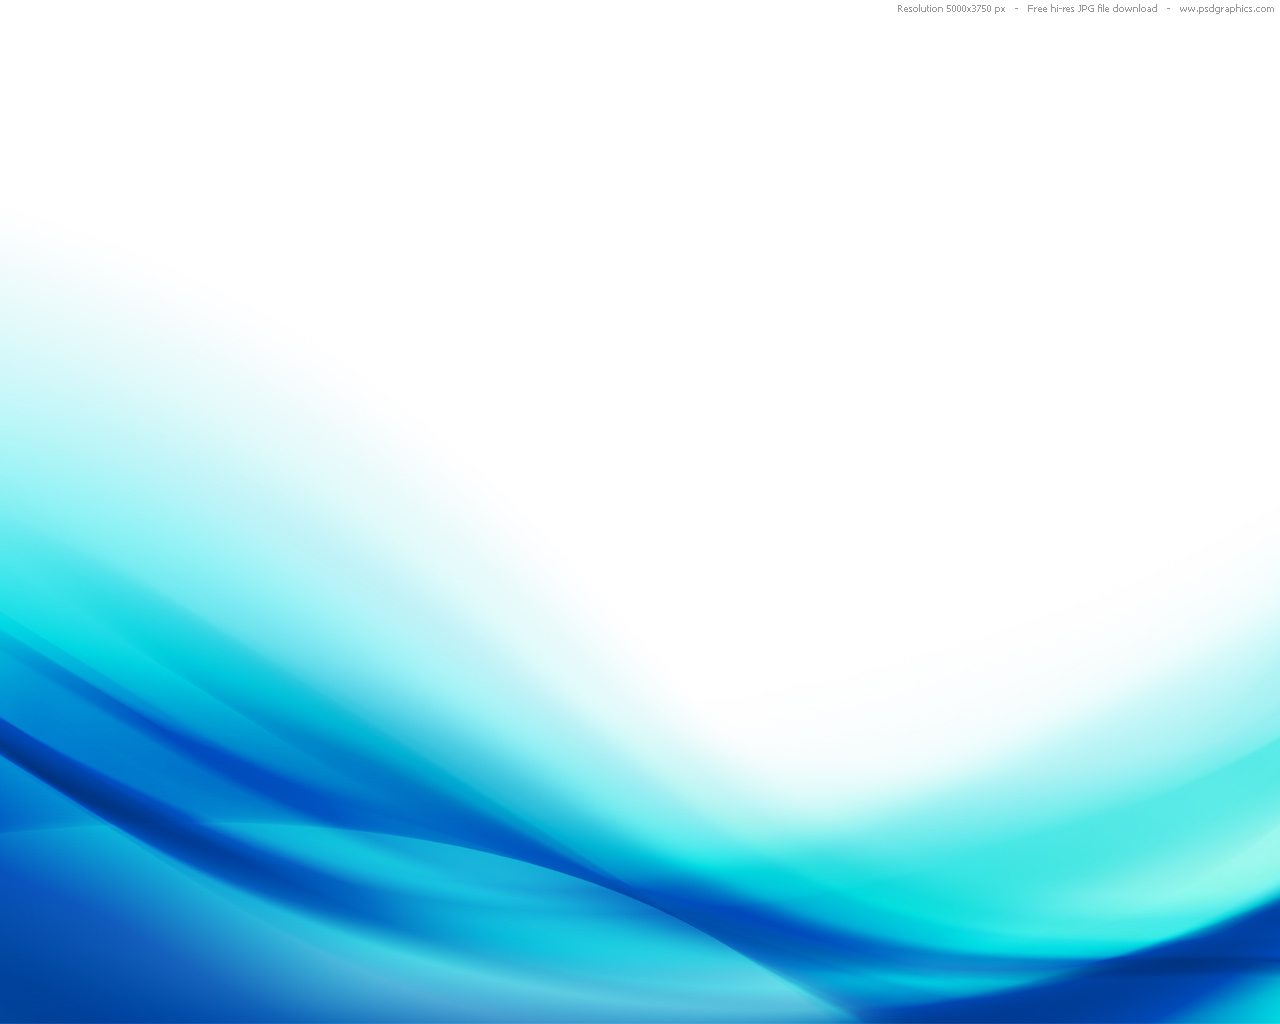 blue and green graphic wallpaper - photo #48